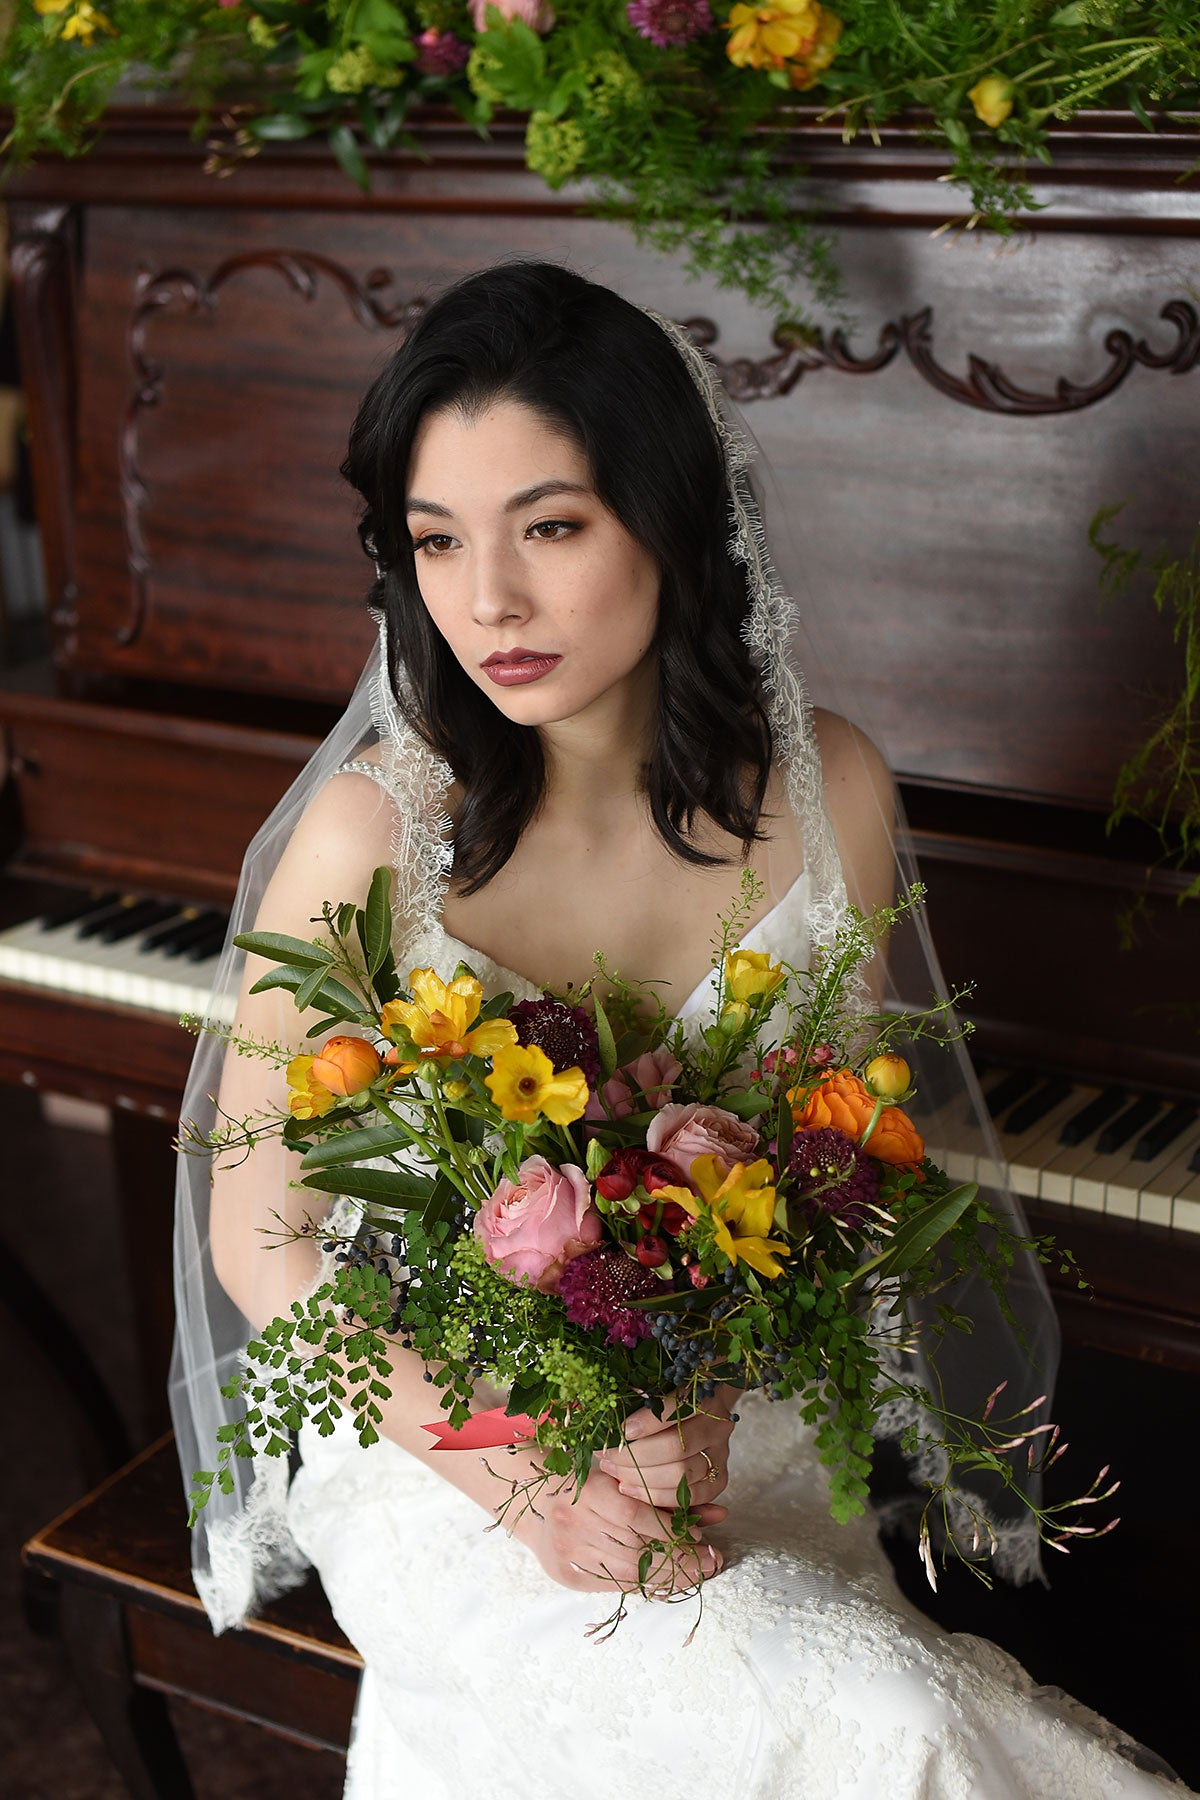 bride wearing lace veil and holding a flower bouquet